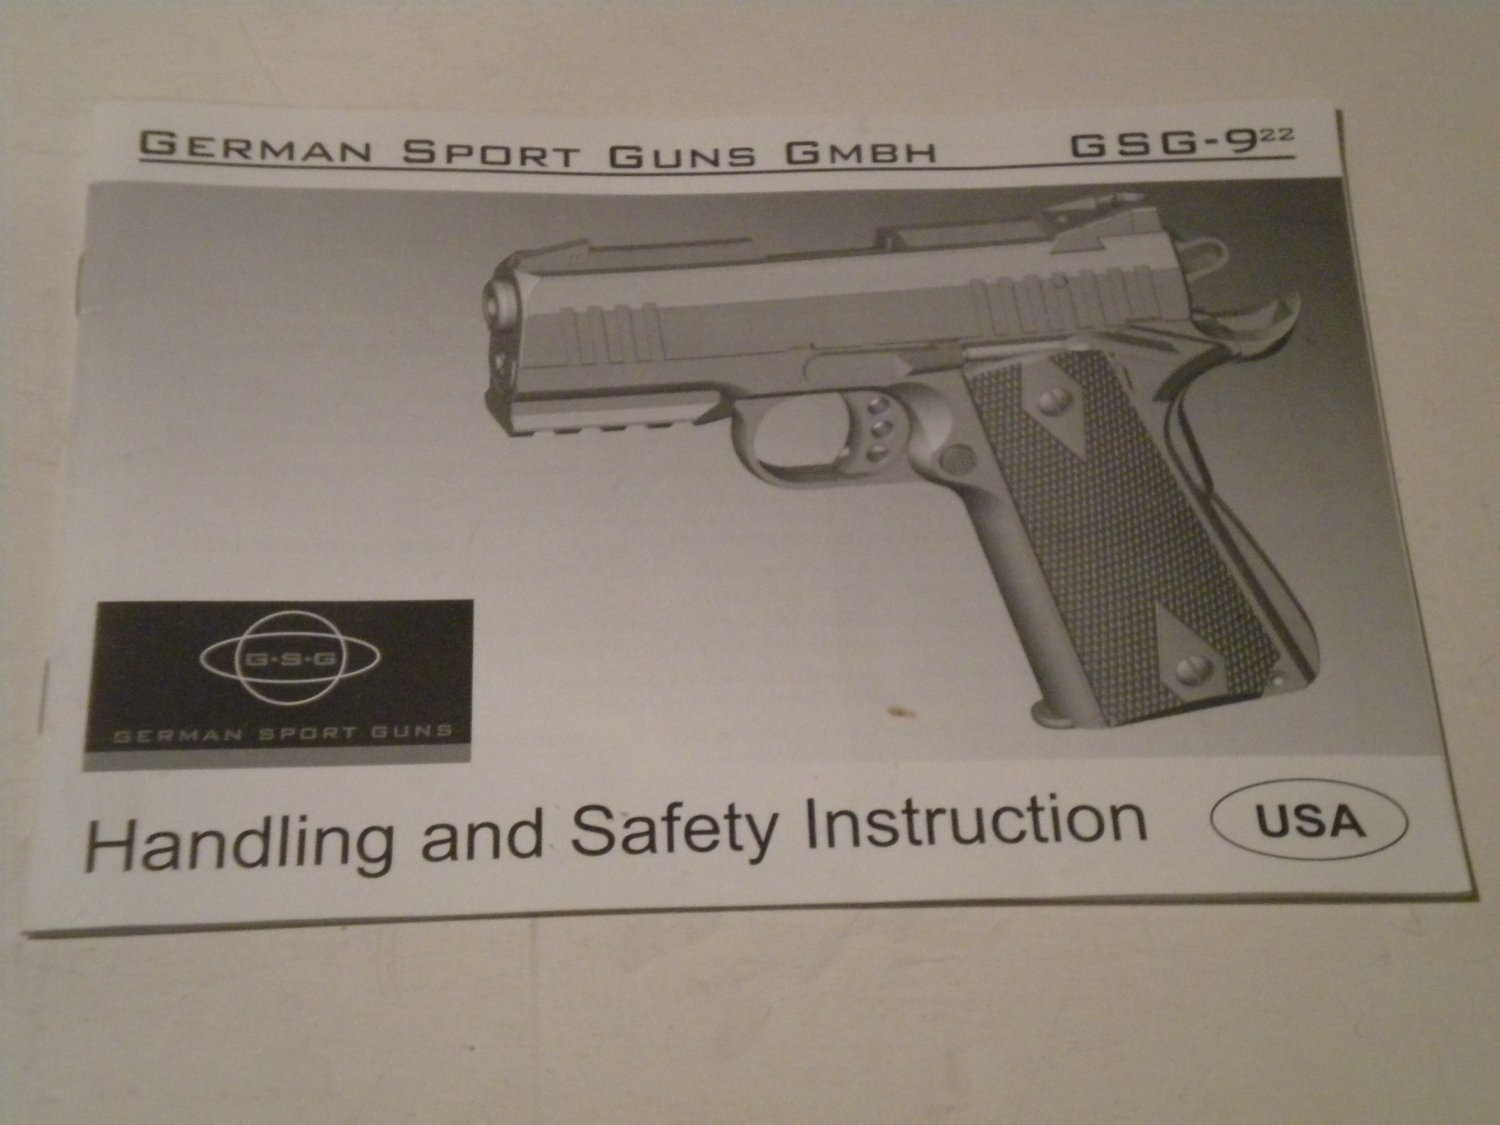 GERMAN SPORT GUNS GSG-9 22 Instruction Manual From American Tactical Imports